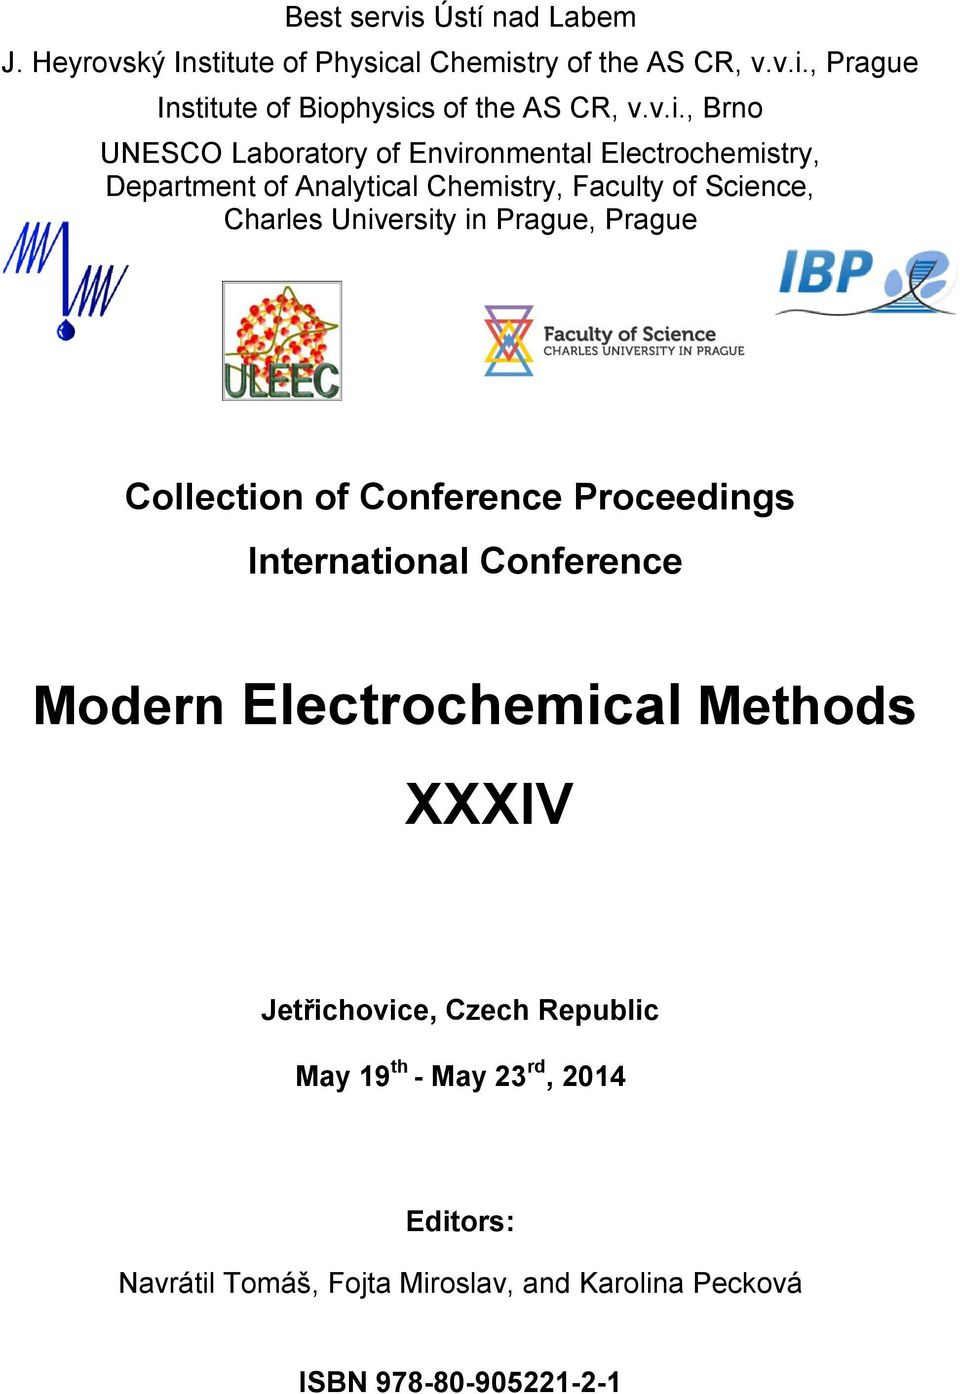 University in Prague, Prague Collection of Conference Proceedings International Conference Modern Electrochemical Methods XXXIV